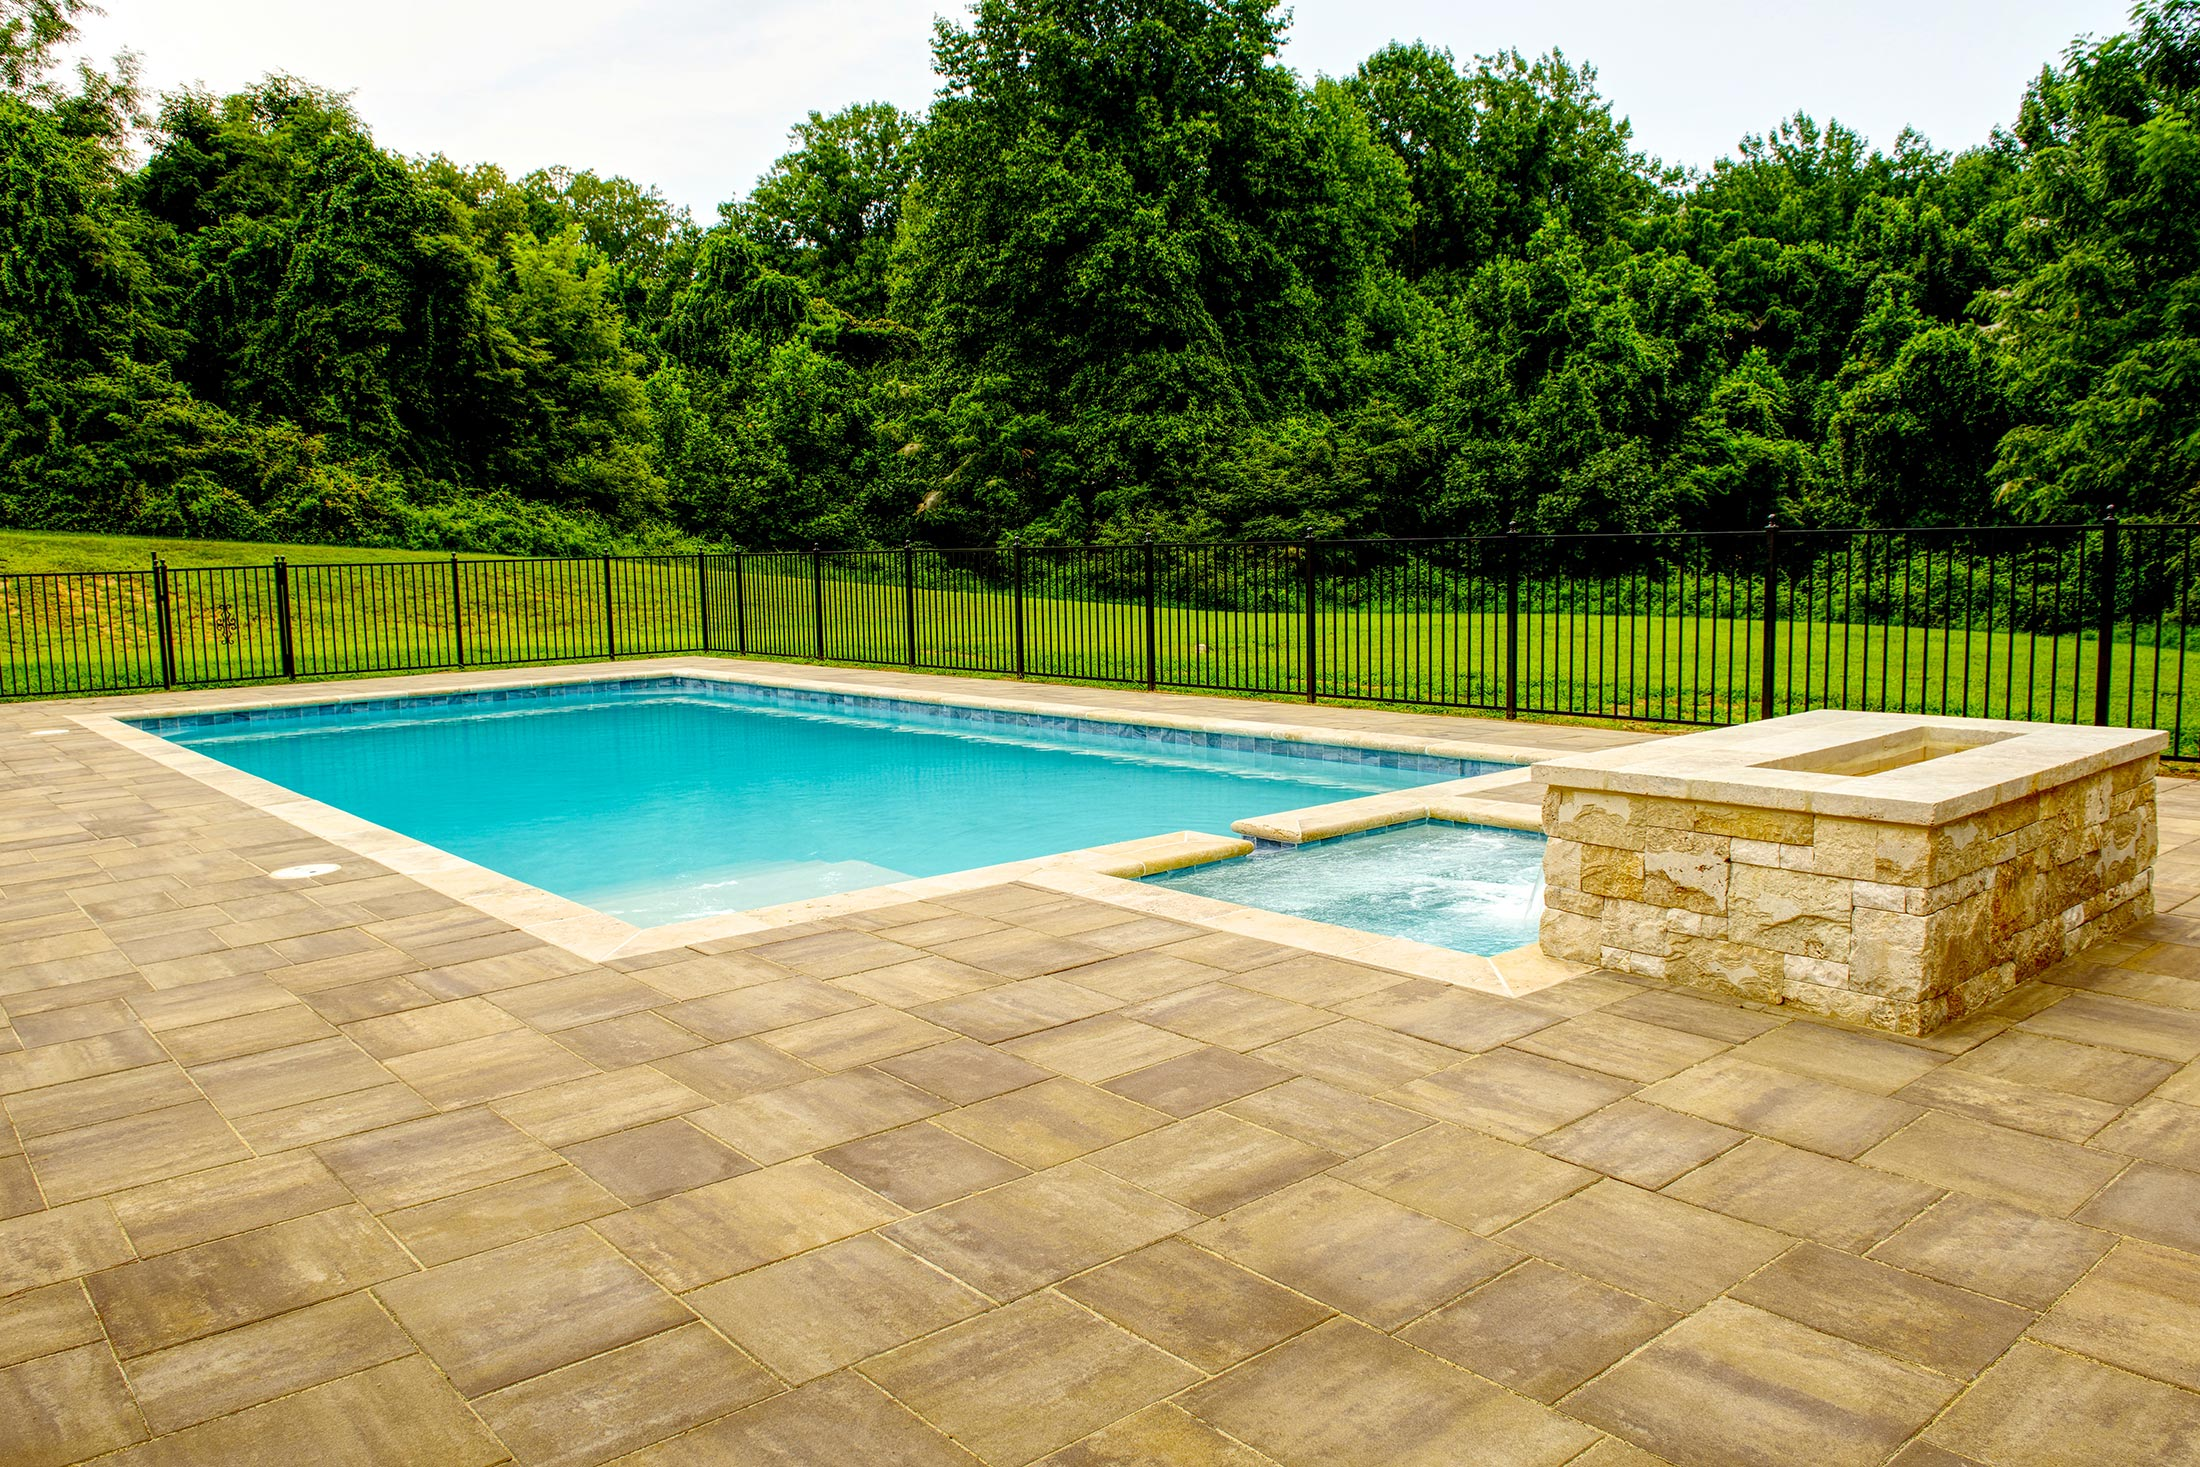 Pool-Safety-Covers